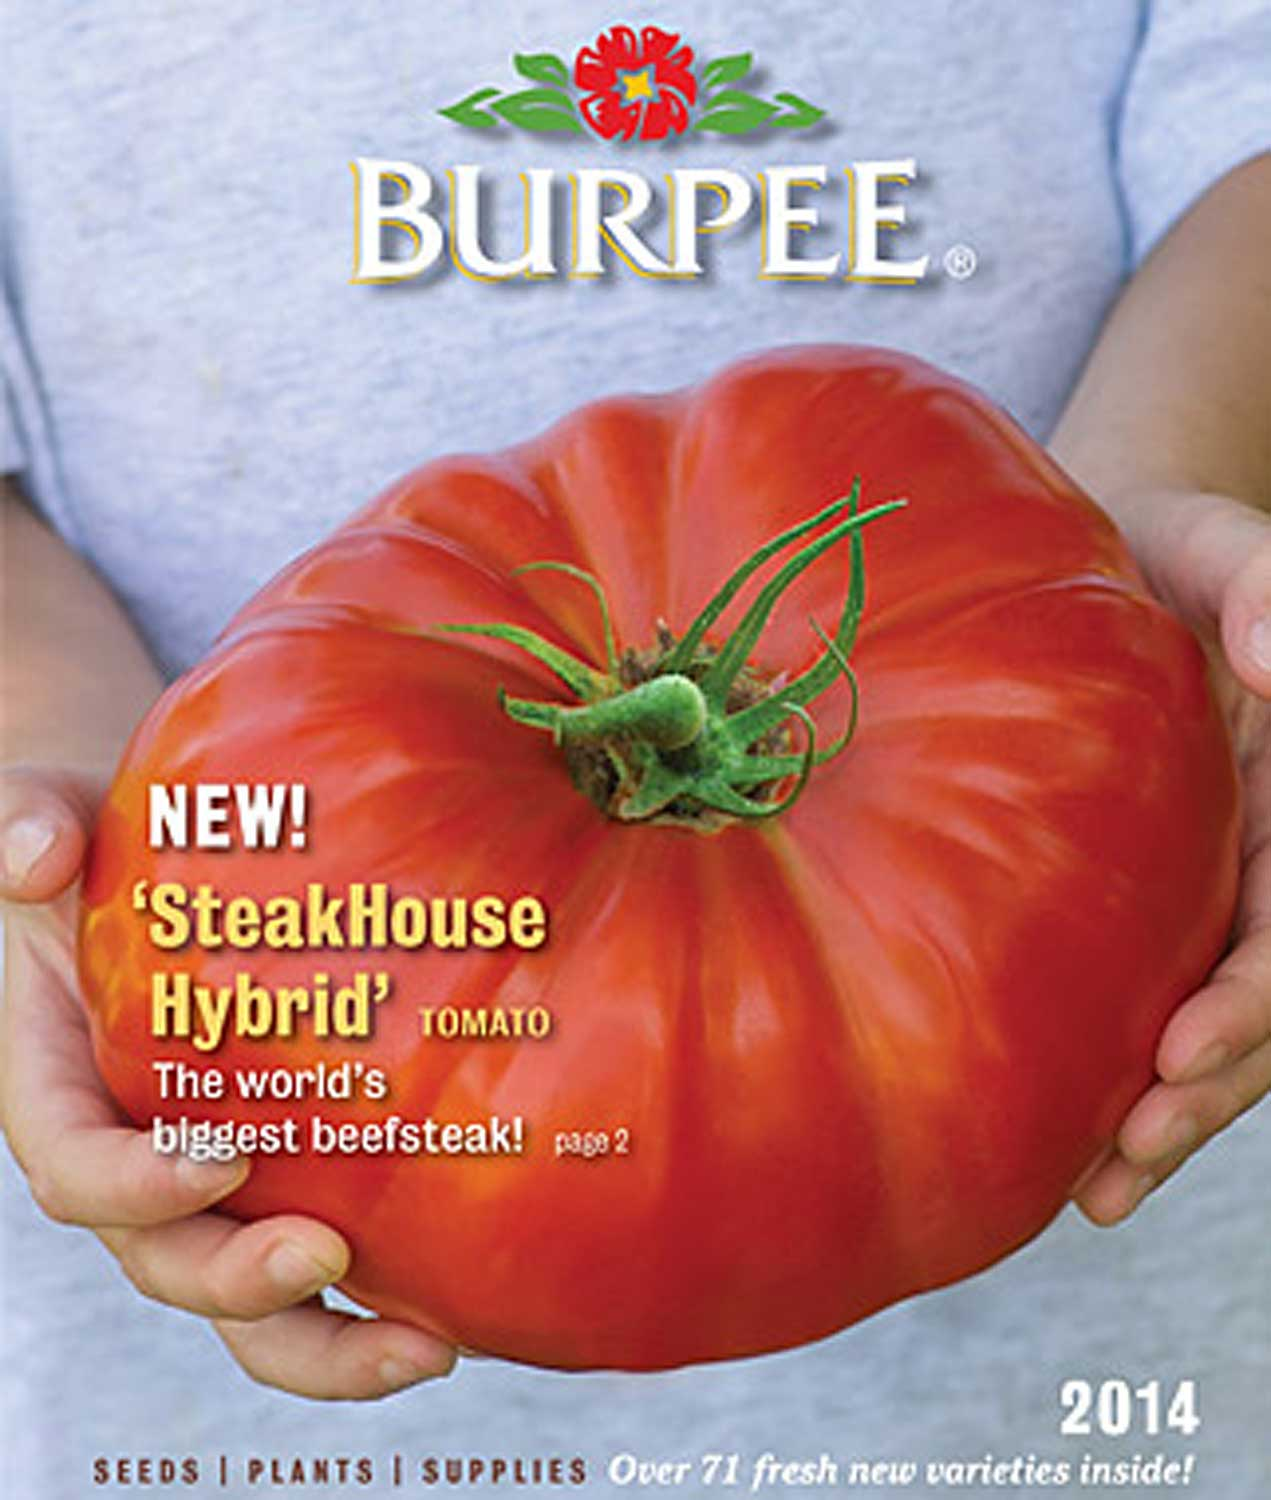 Nov 26,  · The Burpee seed catalog is filled with seeds and already-grown plants for you to buy that include vegetables, flowers, perennials, herbs, and shopnew-l4xmtyae.tk'll also find fruit plants, organics options, seed starting supplies, and other gardening supplies all inside the catalog's pages.